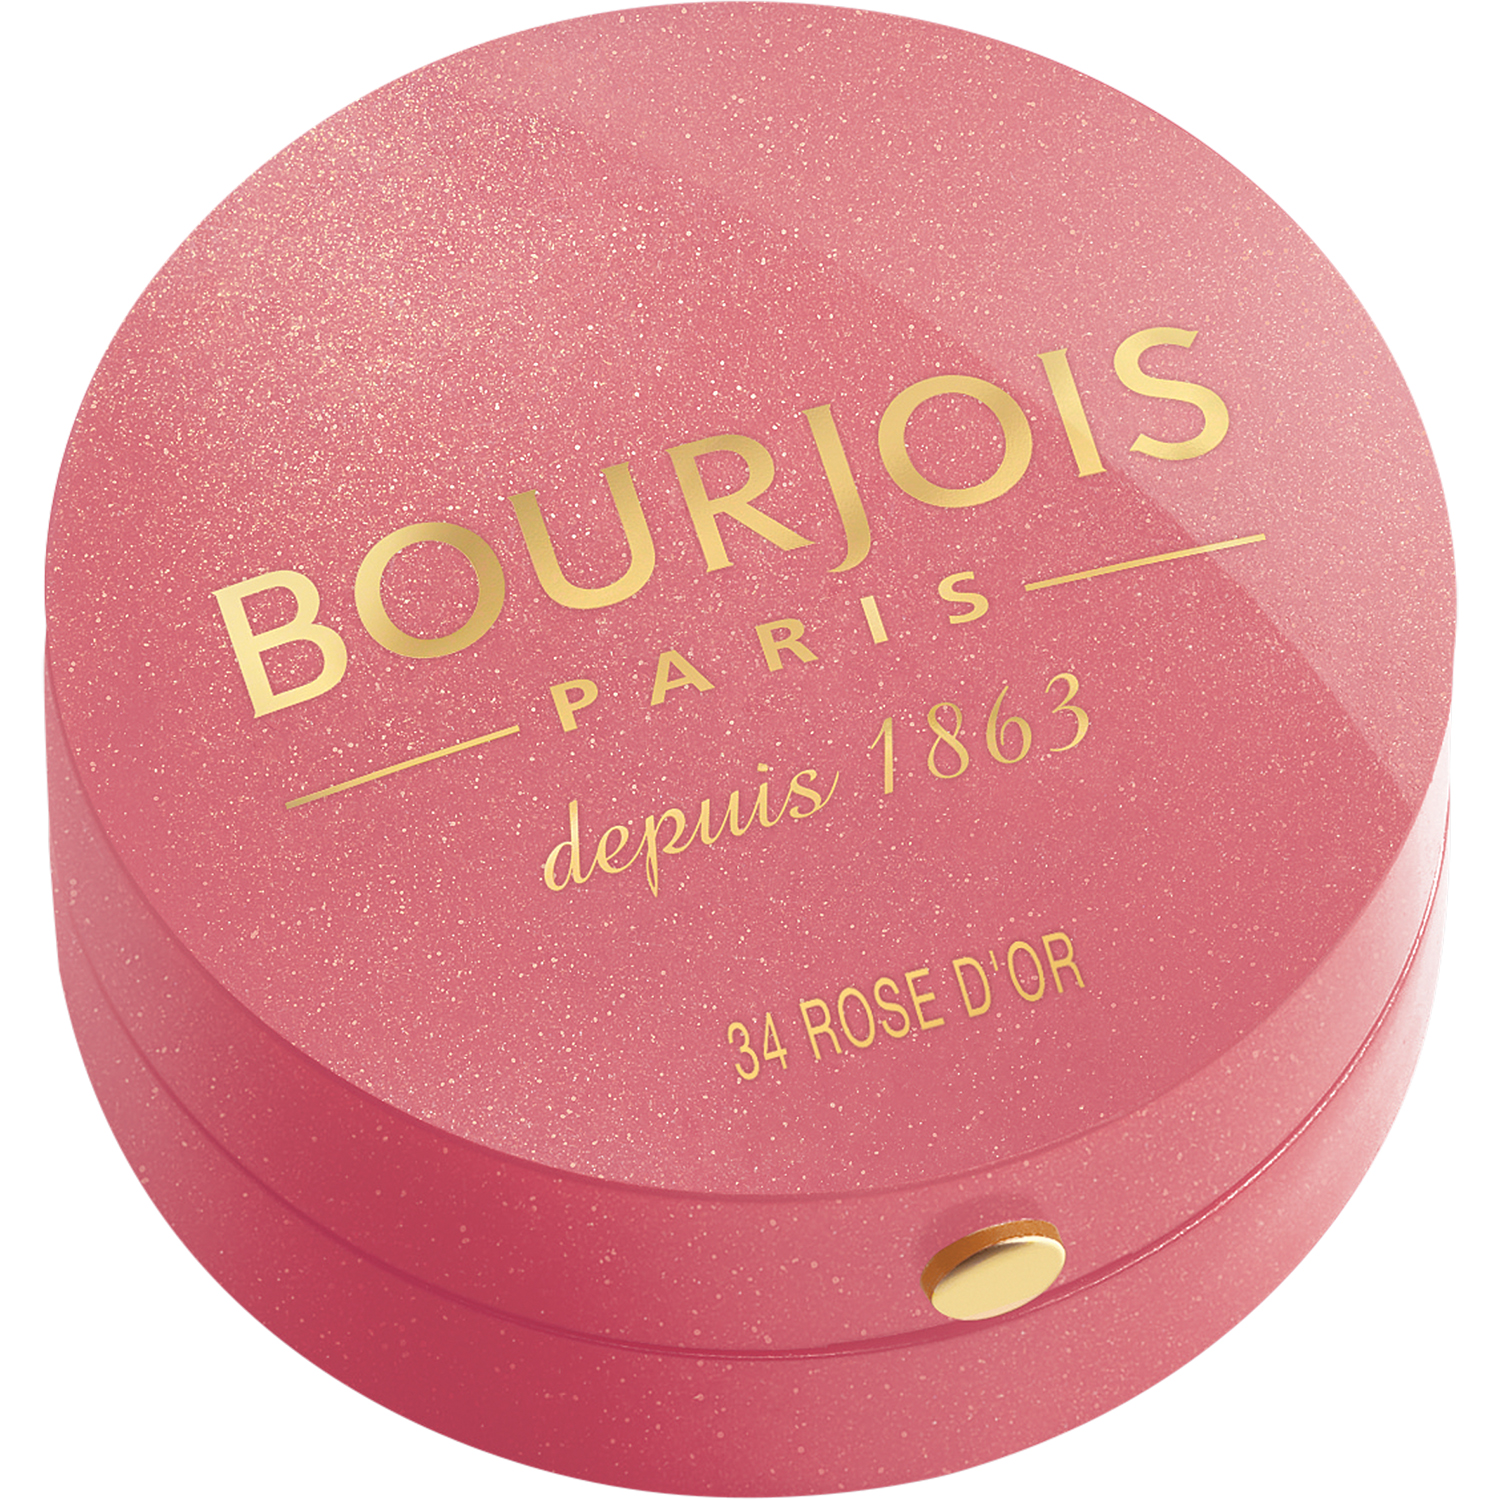 BOURJOIS Румяна для лица 34 / Blusher rose d`or - Румяна